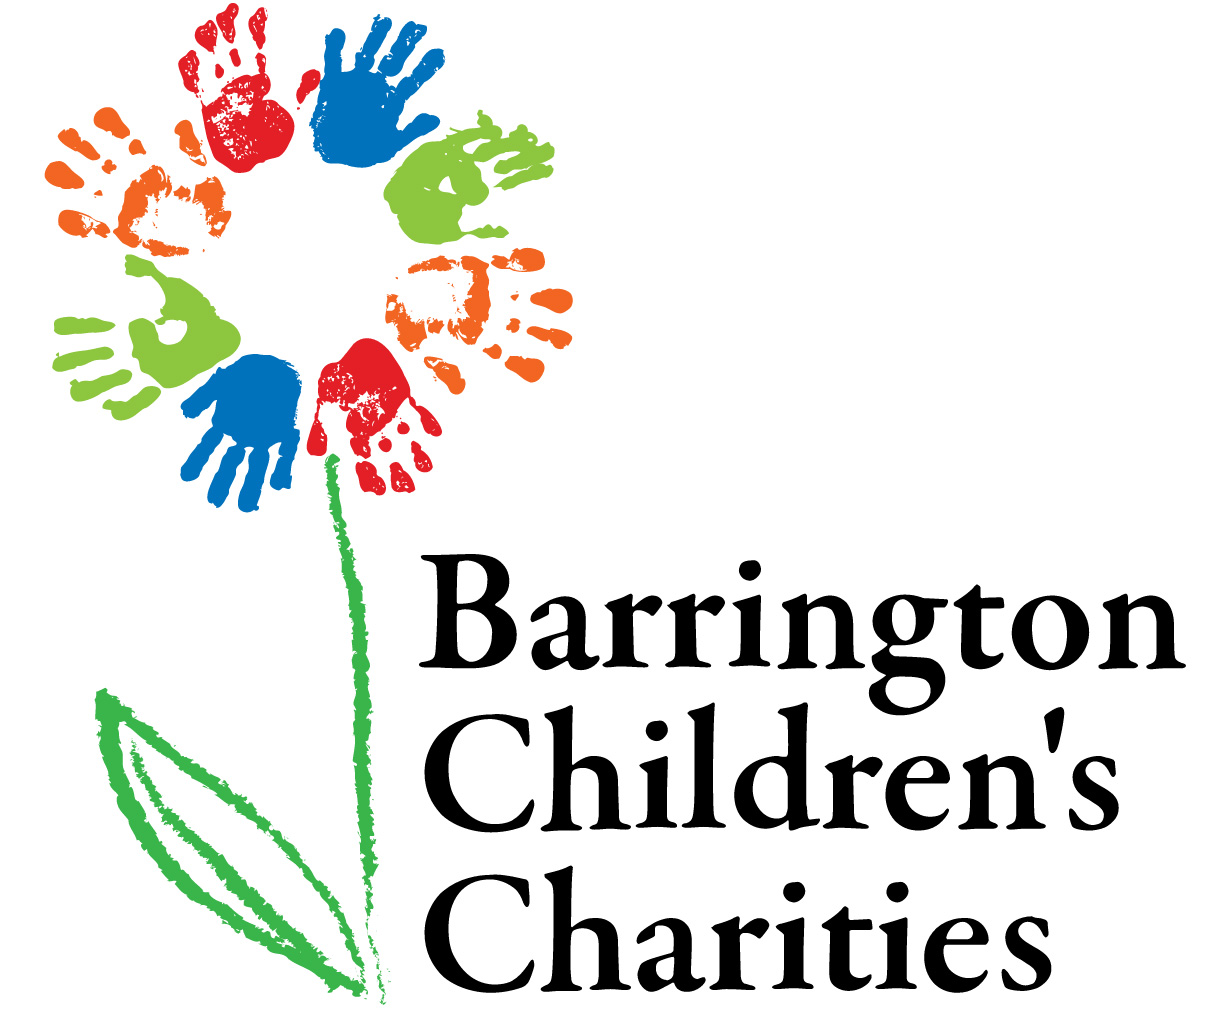 barrington-childrens-charities-logo